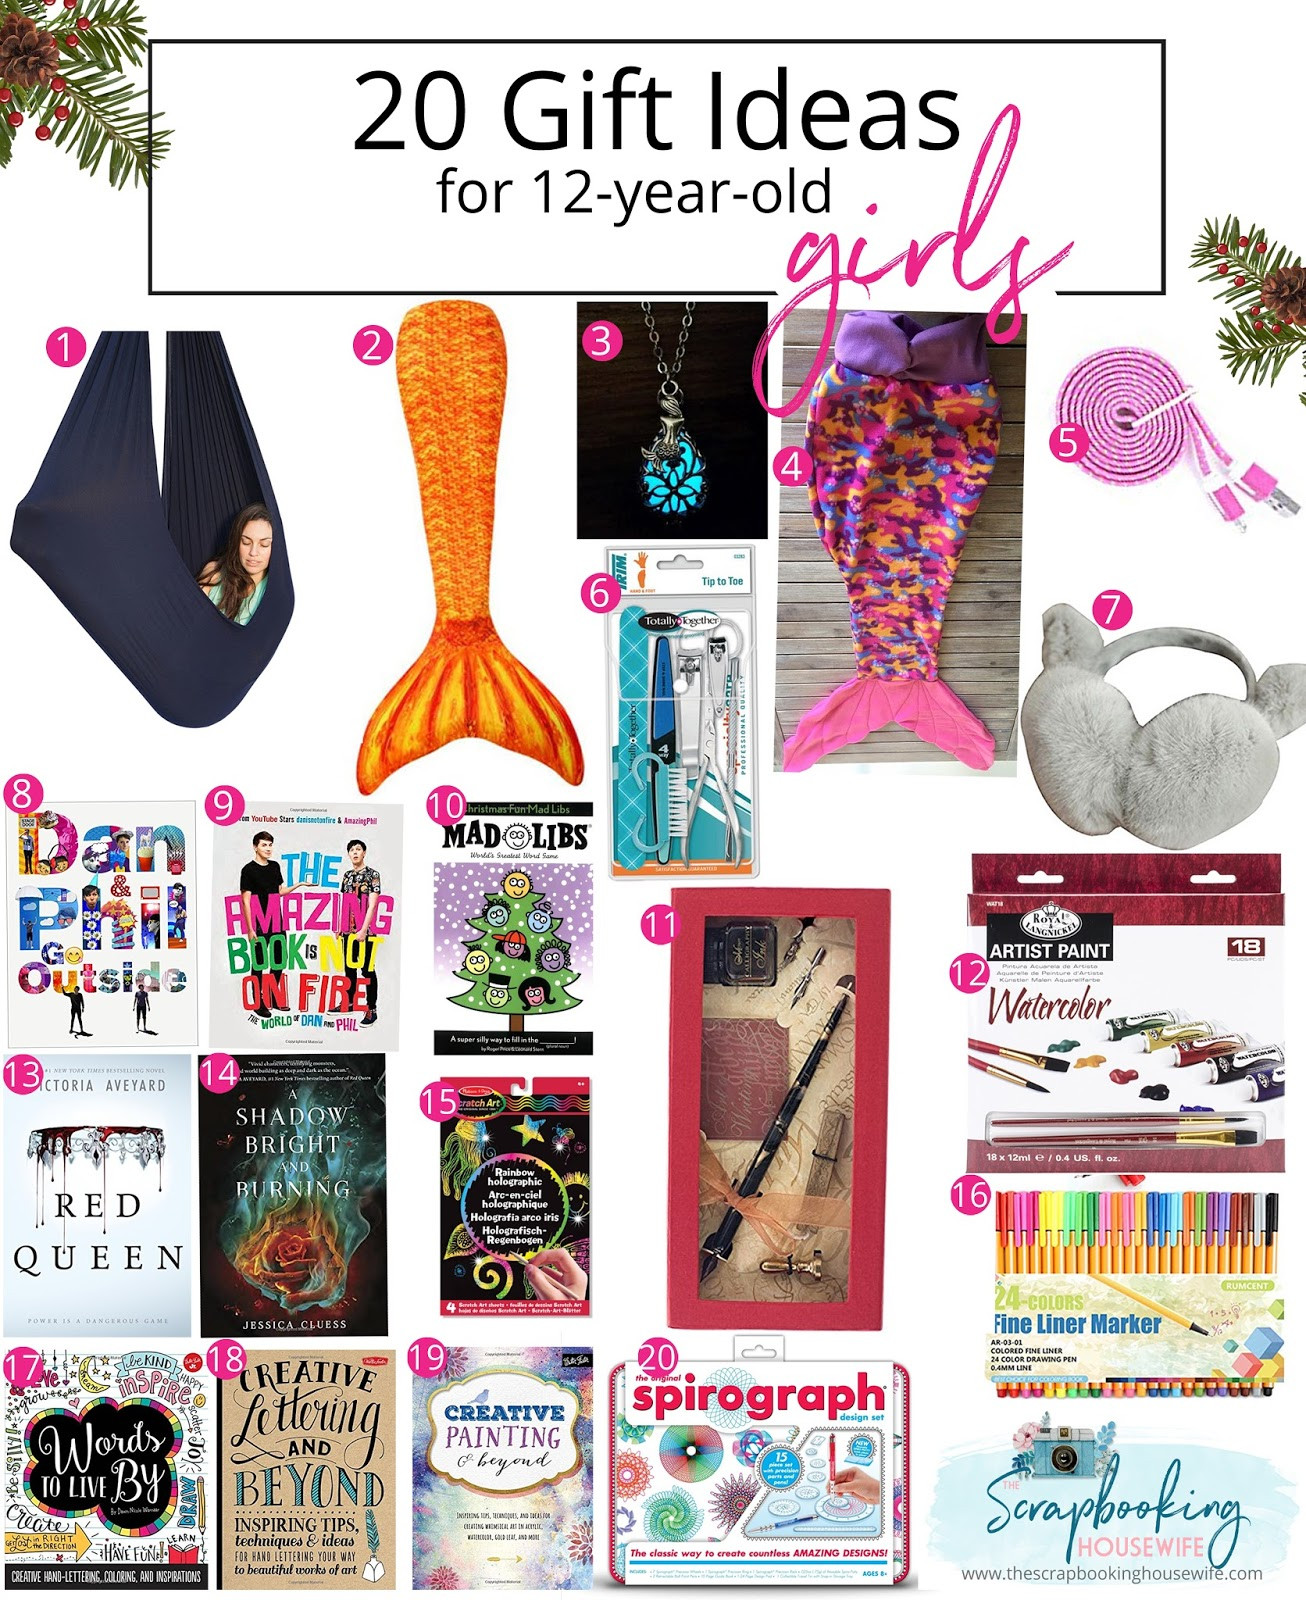 12 Year Old Christmas Gift Ideas  Ellabella Designs 13 GIFT IDEAS FOR TODDLERS